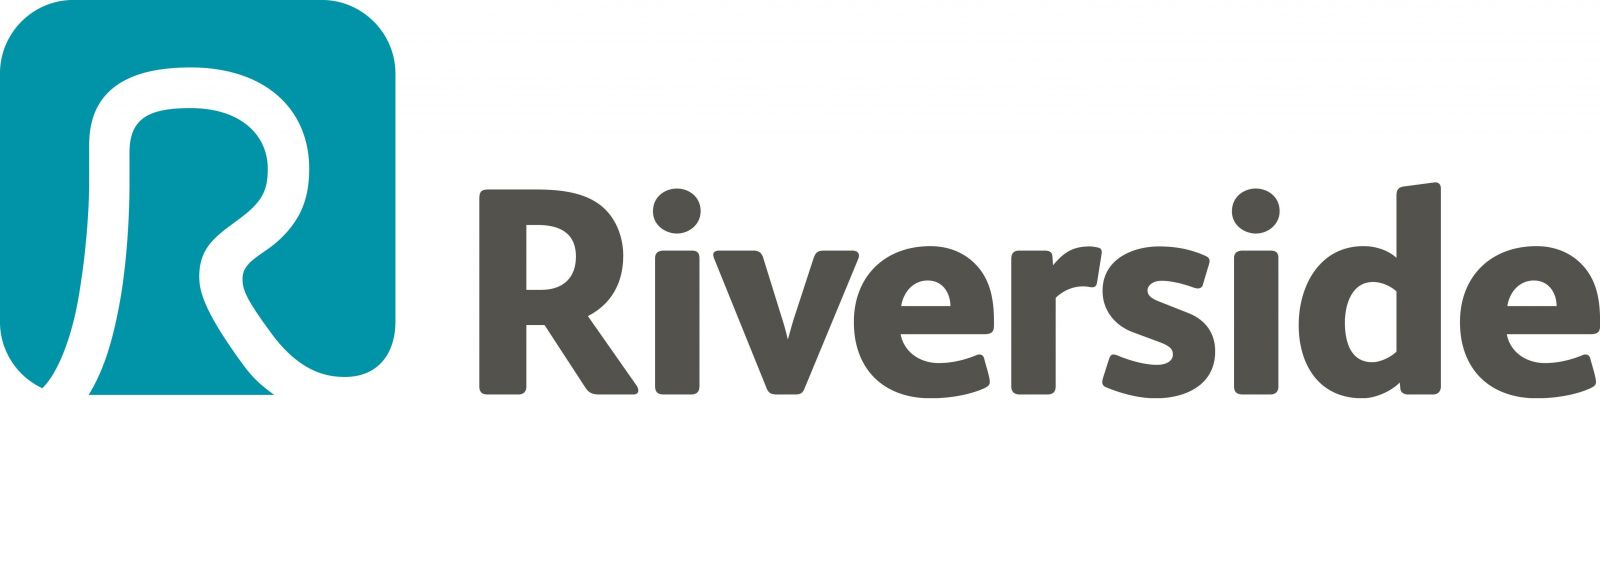 Riverside Housing Association logo